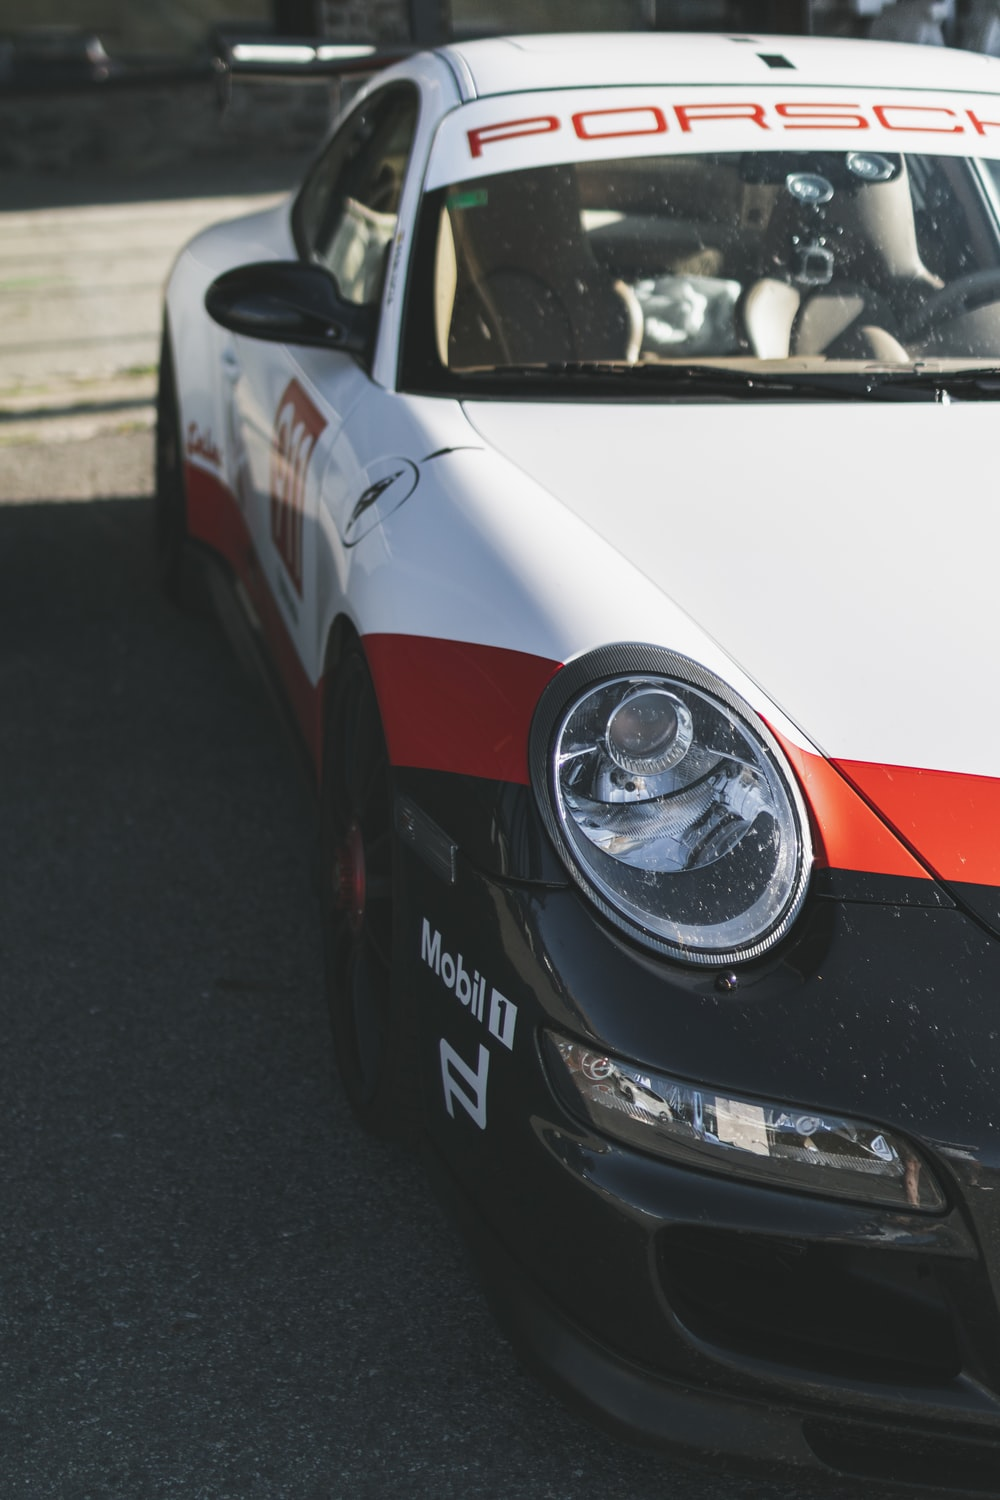 white and red porsche 911 on road during daytime